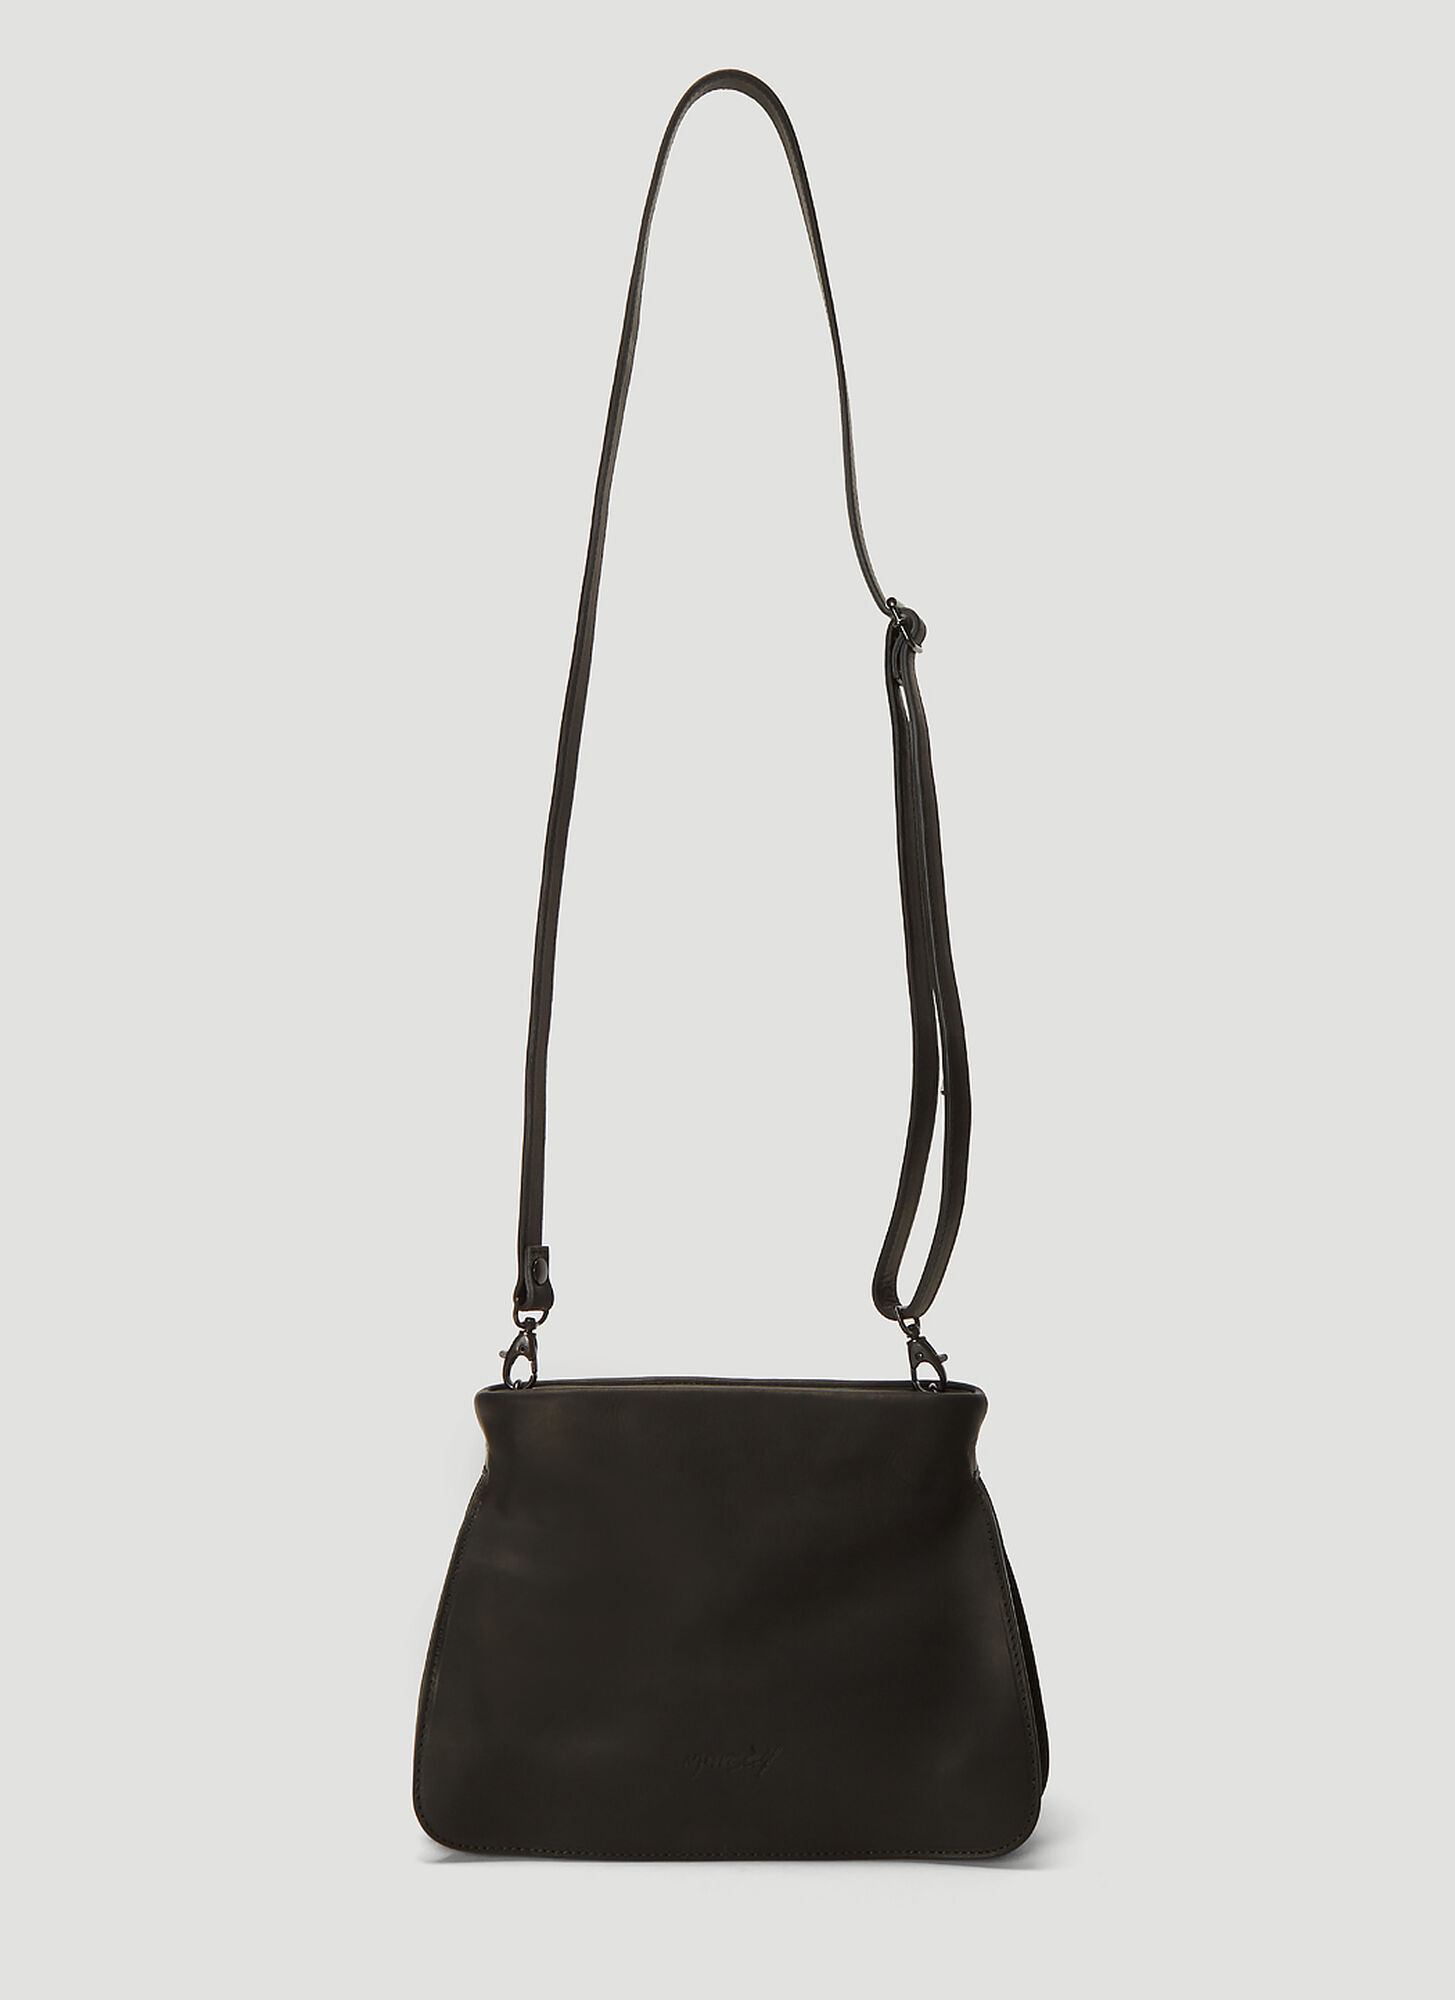 Marsell Fantasoffio Handbag in Black